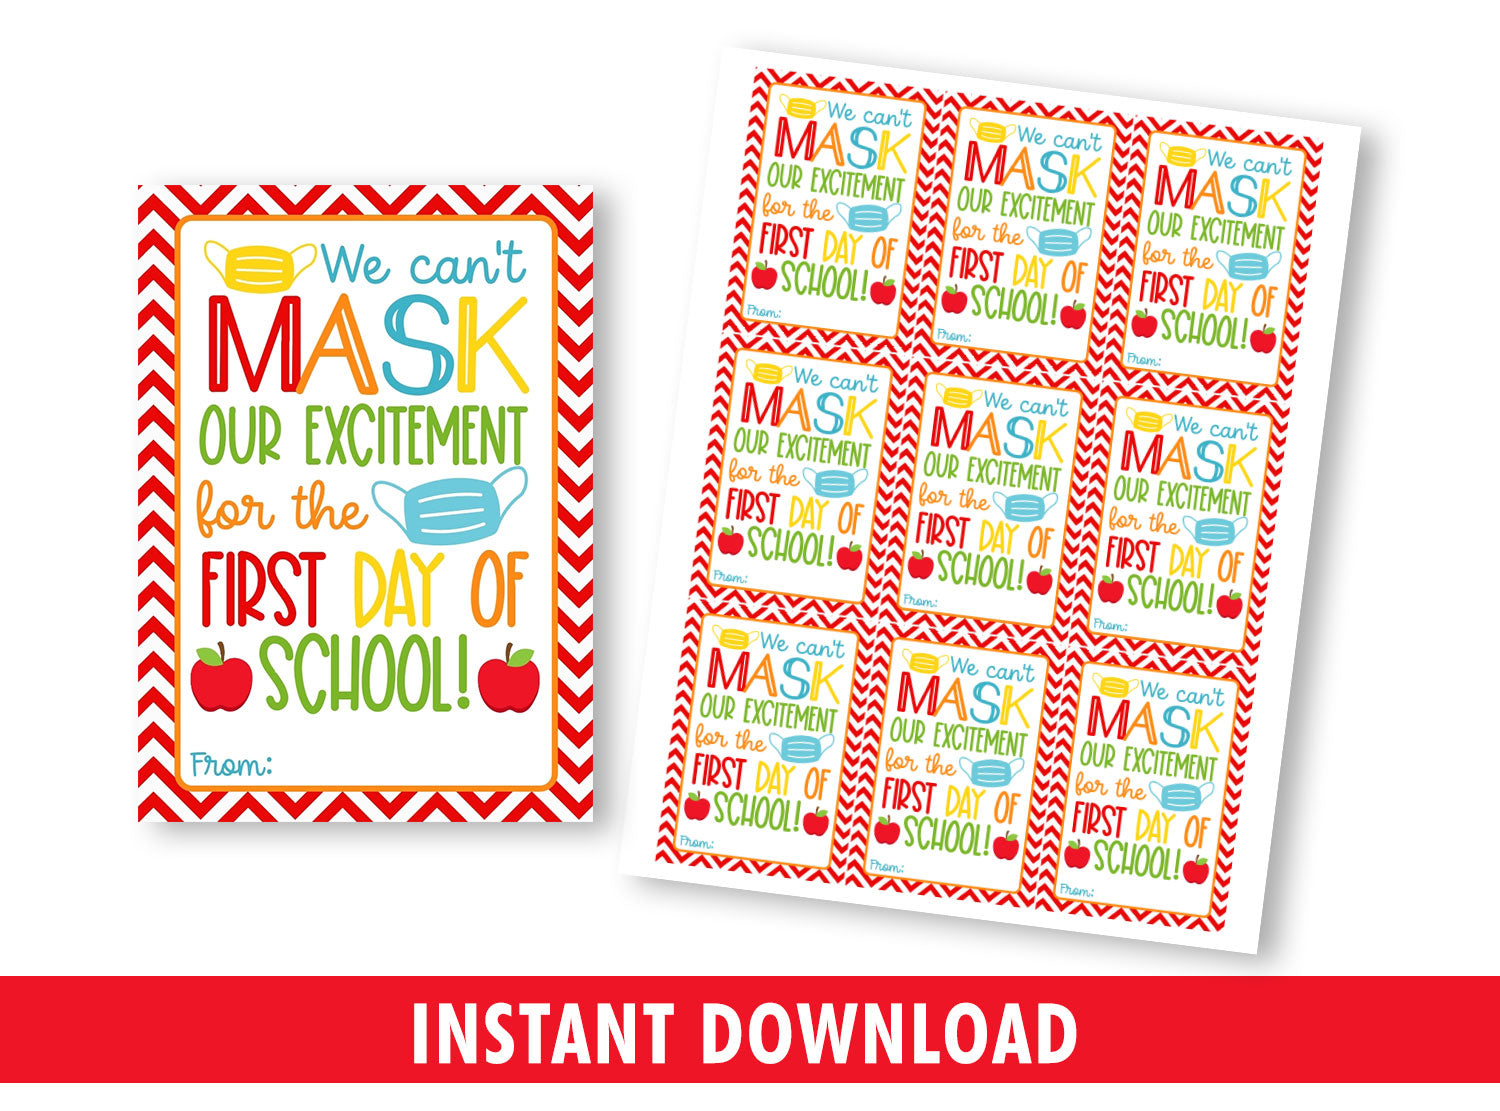 Can't MASK my excitement for first day of school gift tag, Face Mask Favors Card, [INSTANT DOWNLOAD] - TitaTipsPrintables